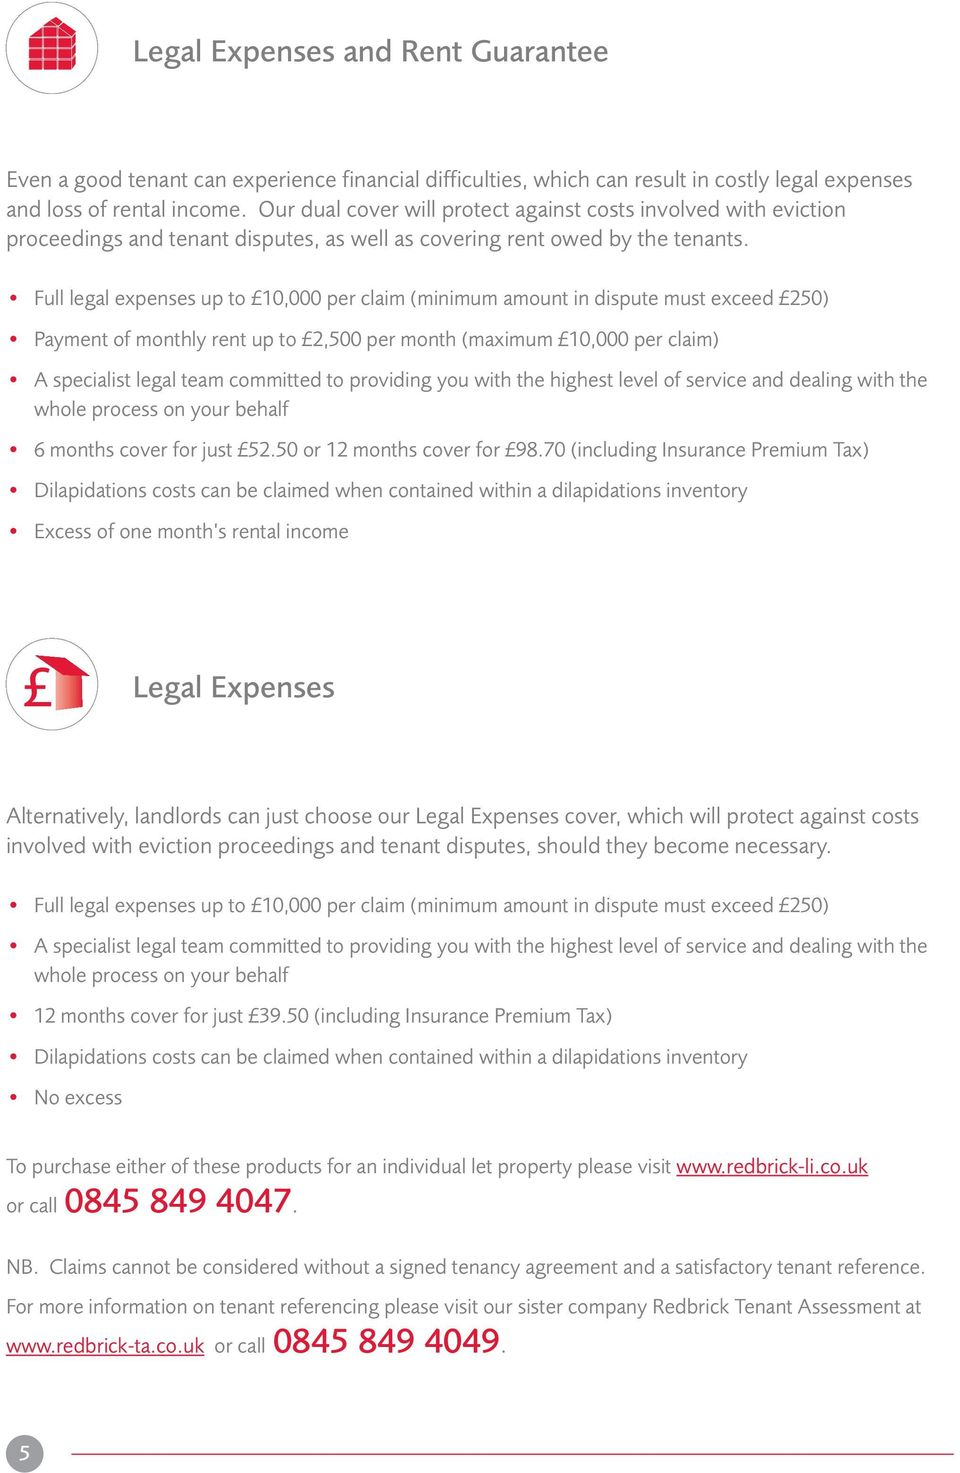 Full legal expenses up to 10,000 per claim (minimum amount in dispute must exceed 250) Payment of monthly rent up to 2,500 per month (maximum 10,000 per claim) A specialist legal team committed to